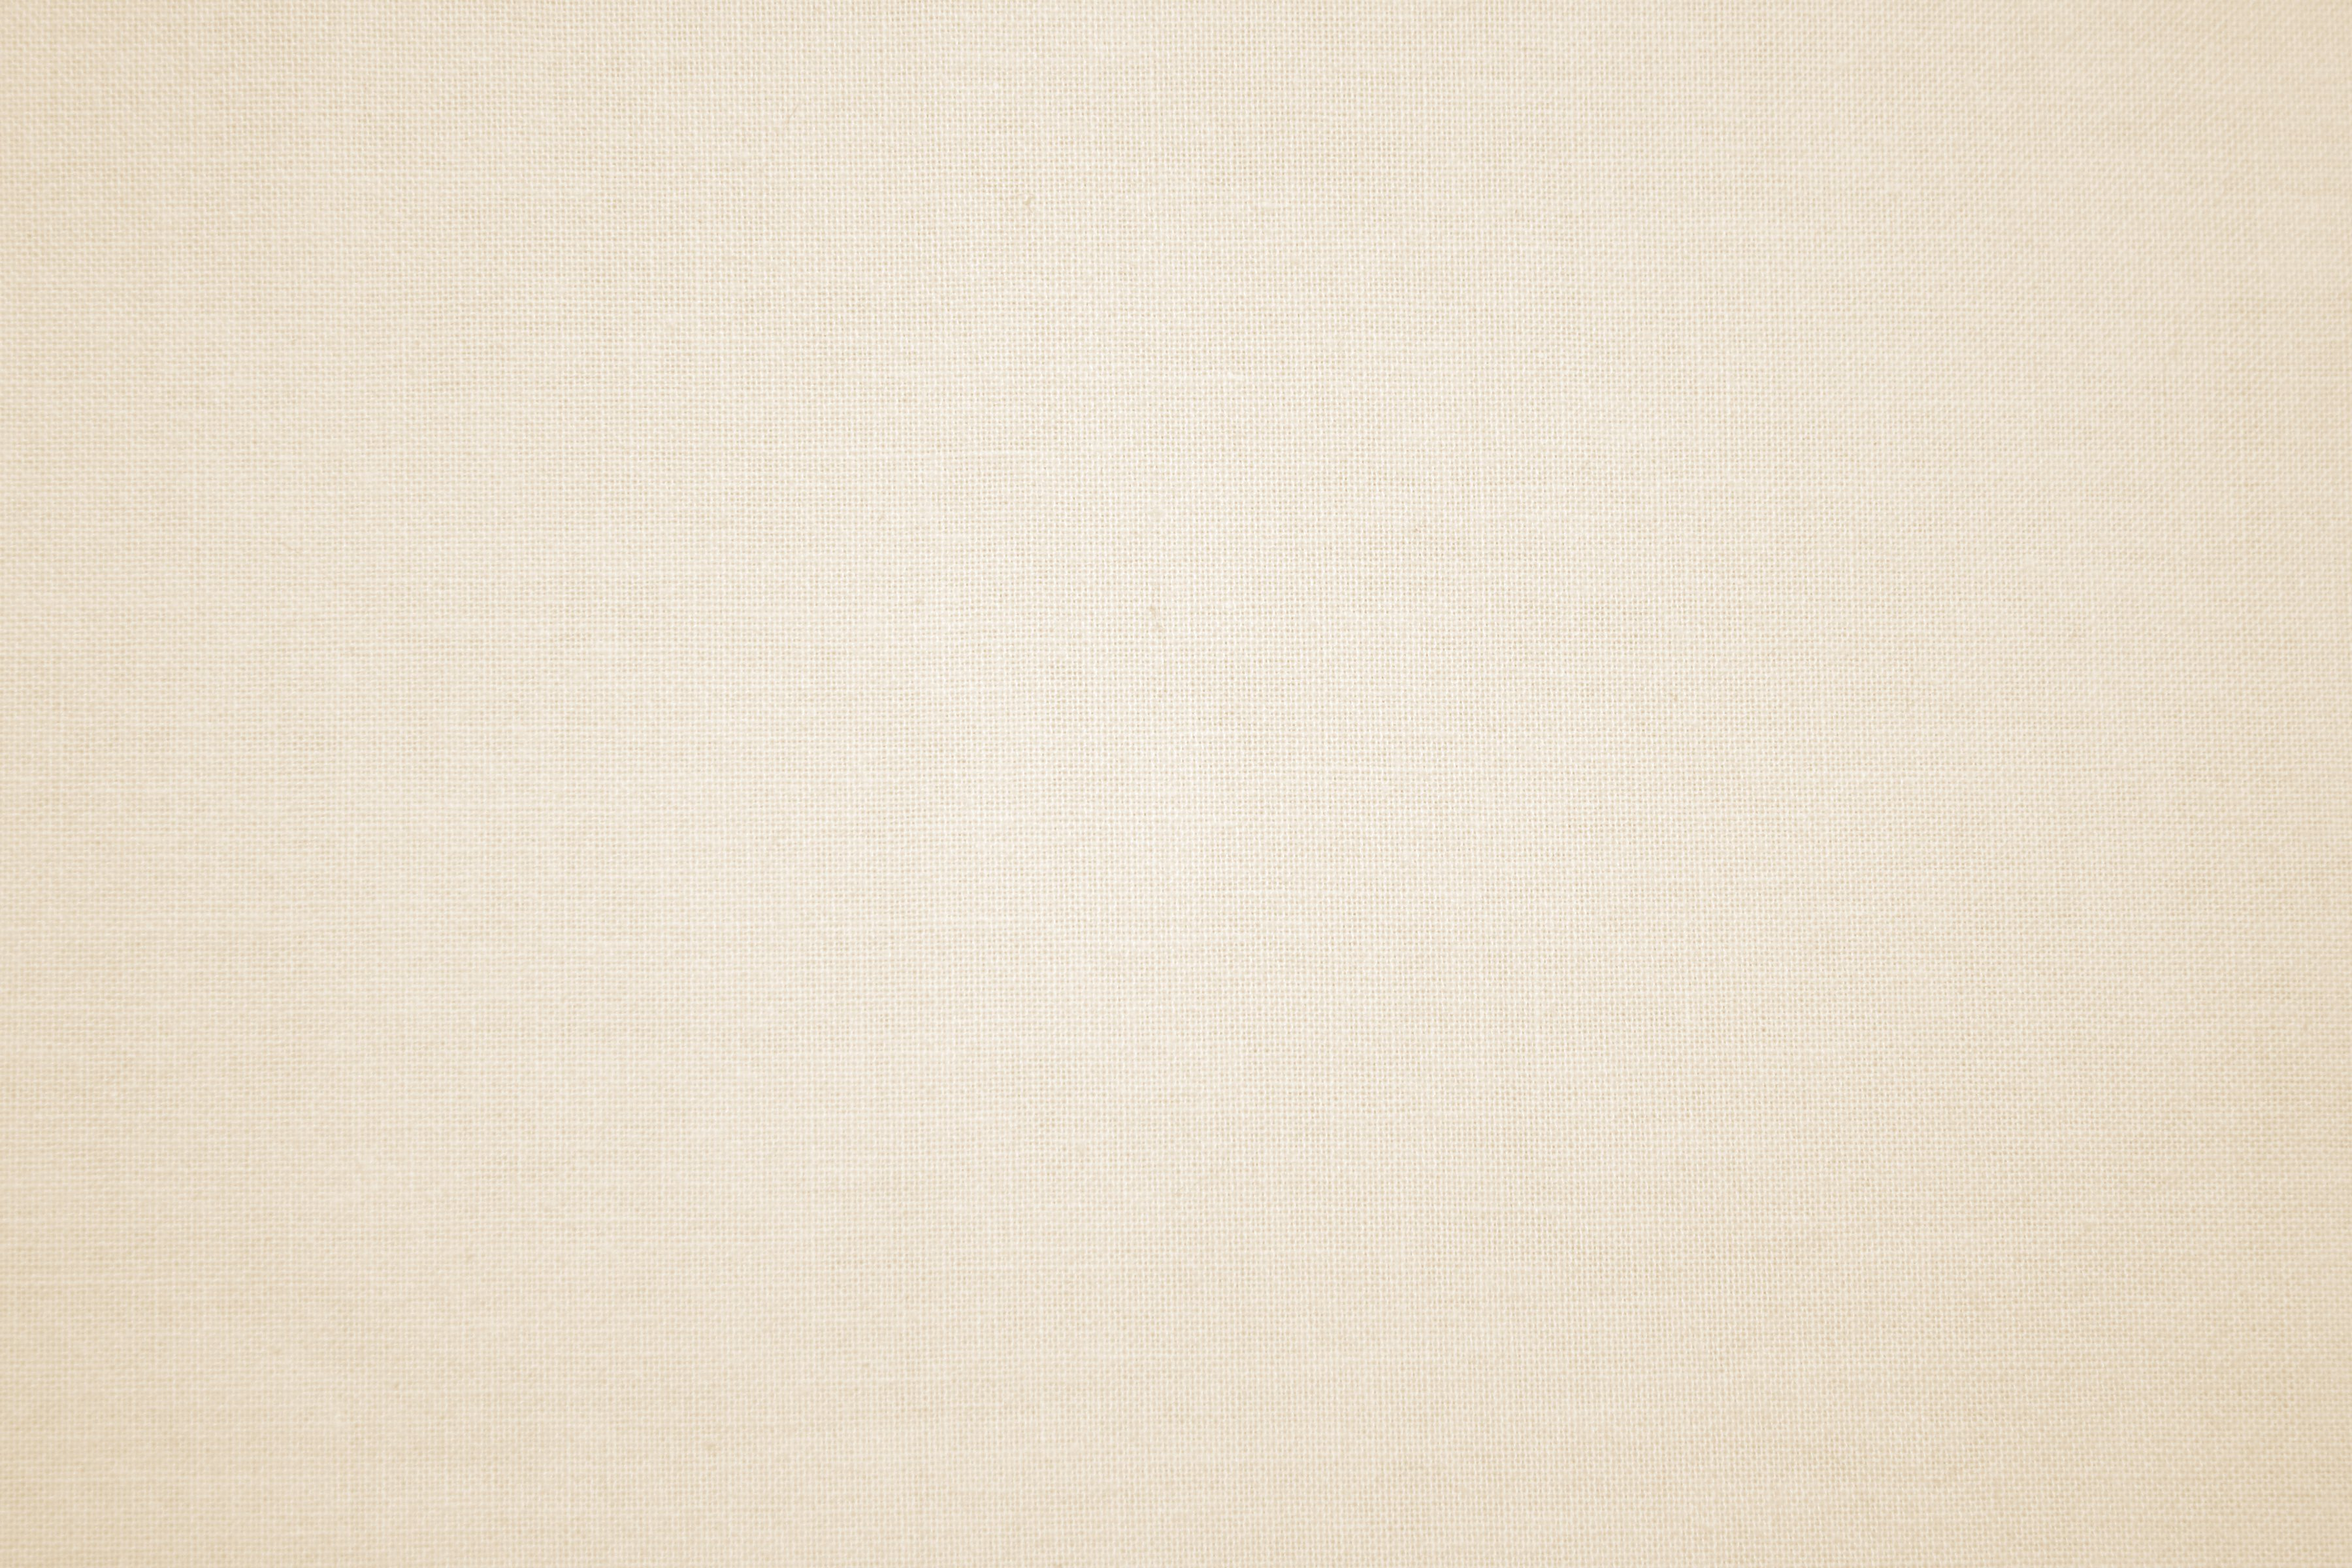 Beige Colored Canvas Fabric Texture Picture Free